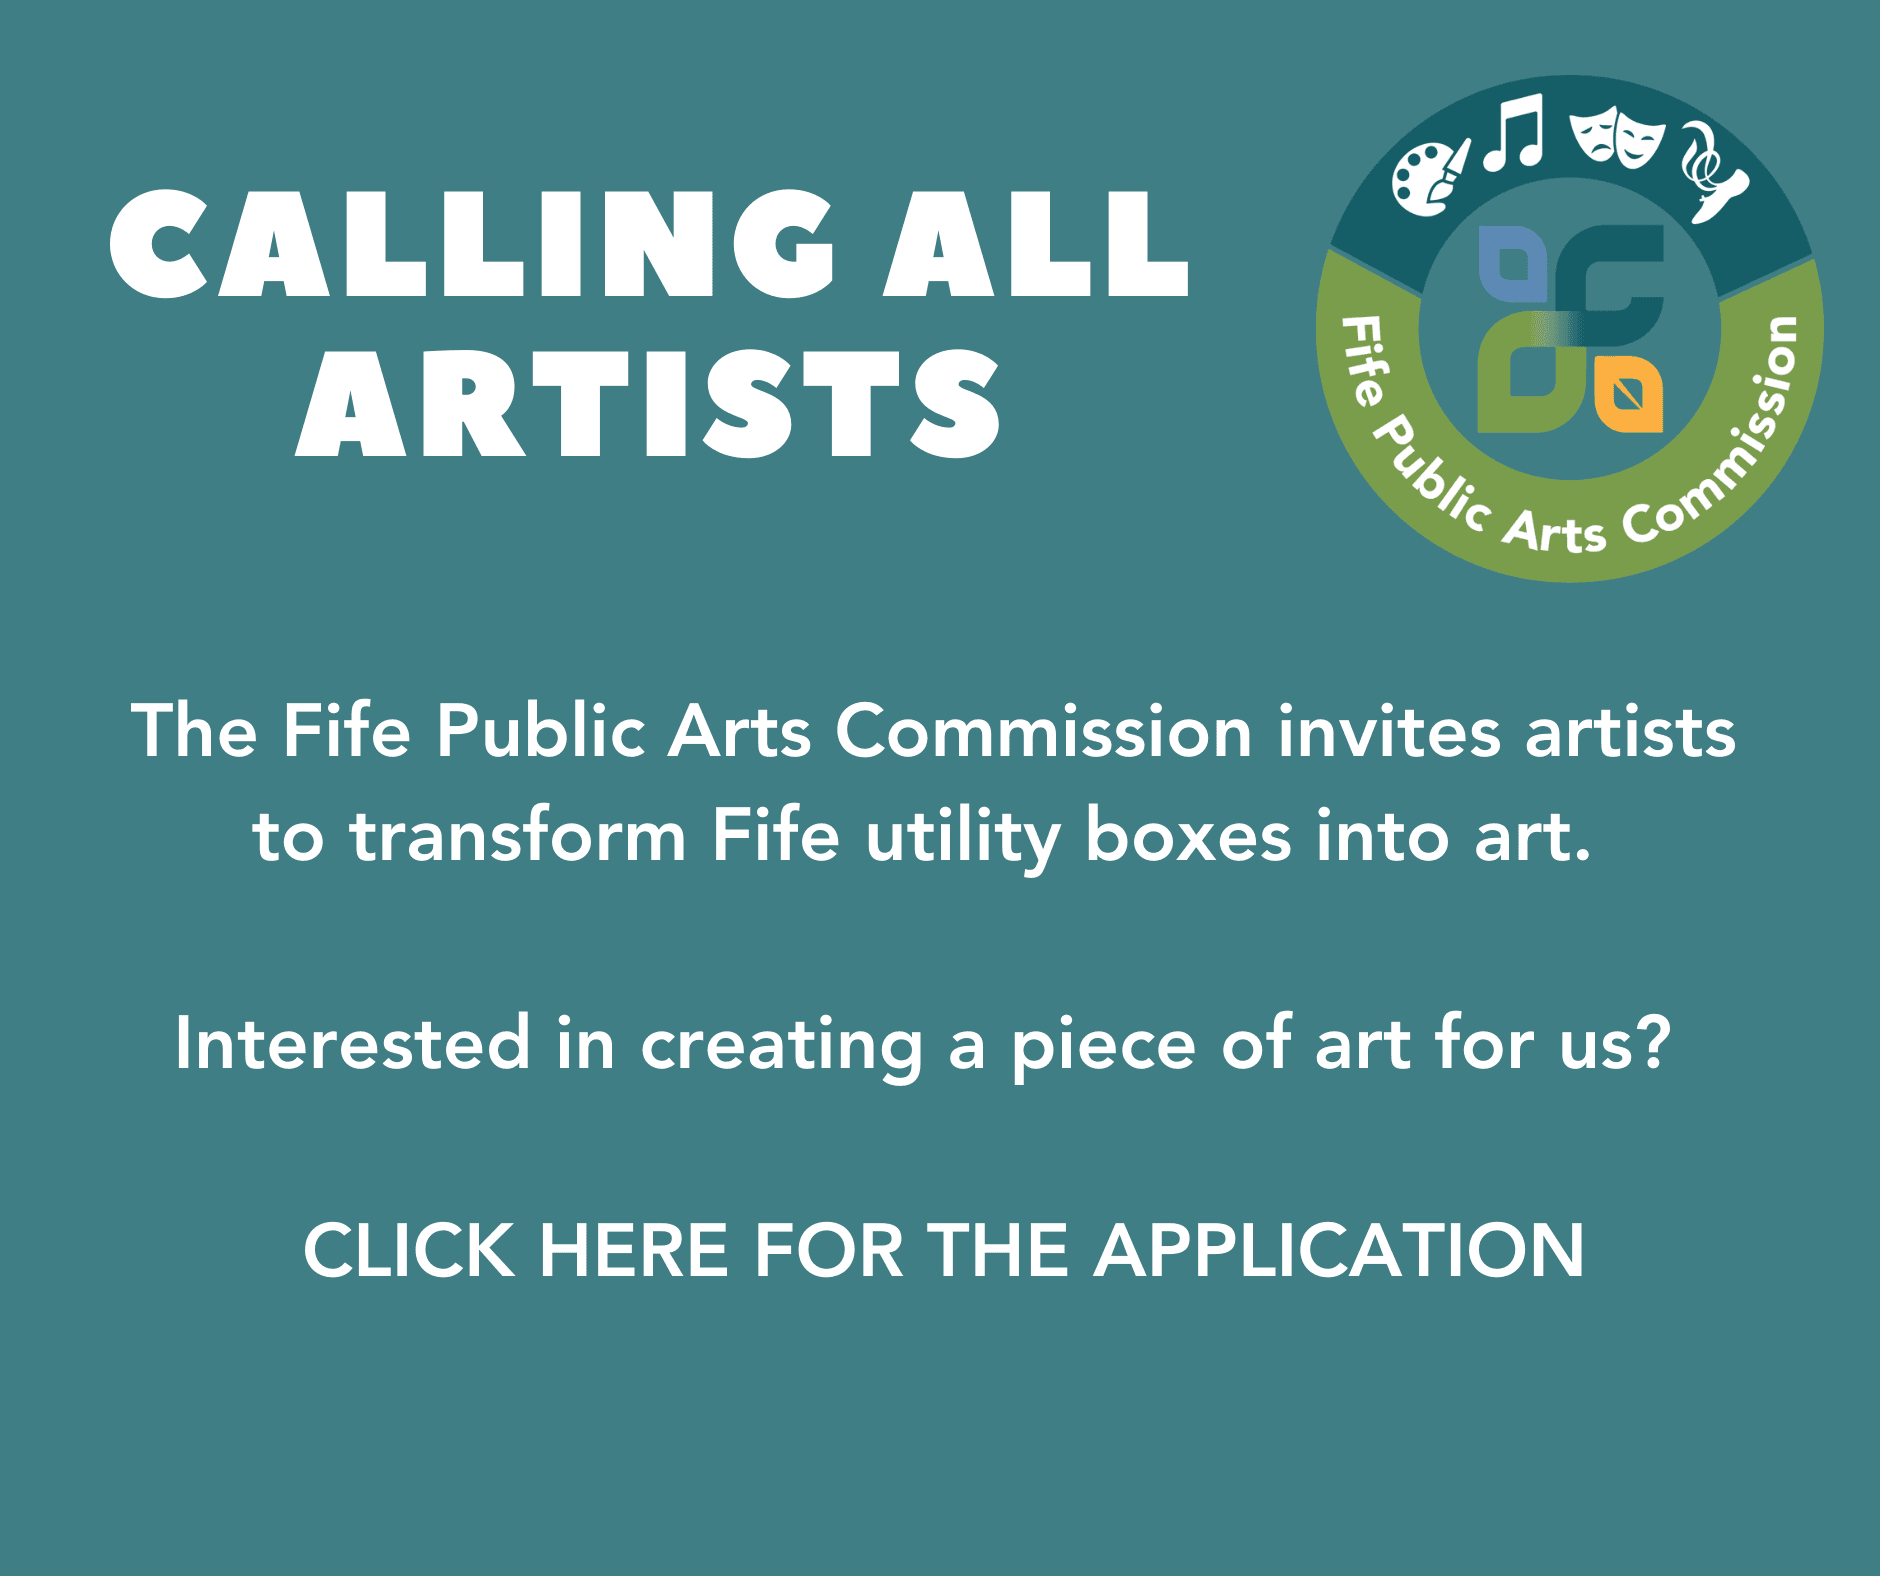 Call for Artists application link